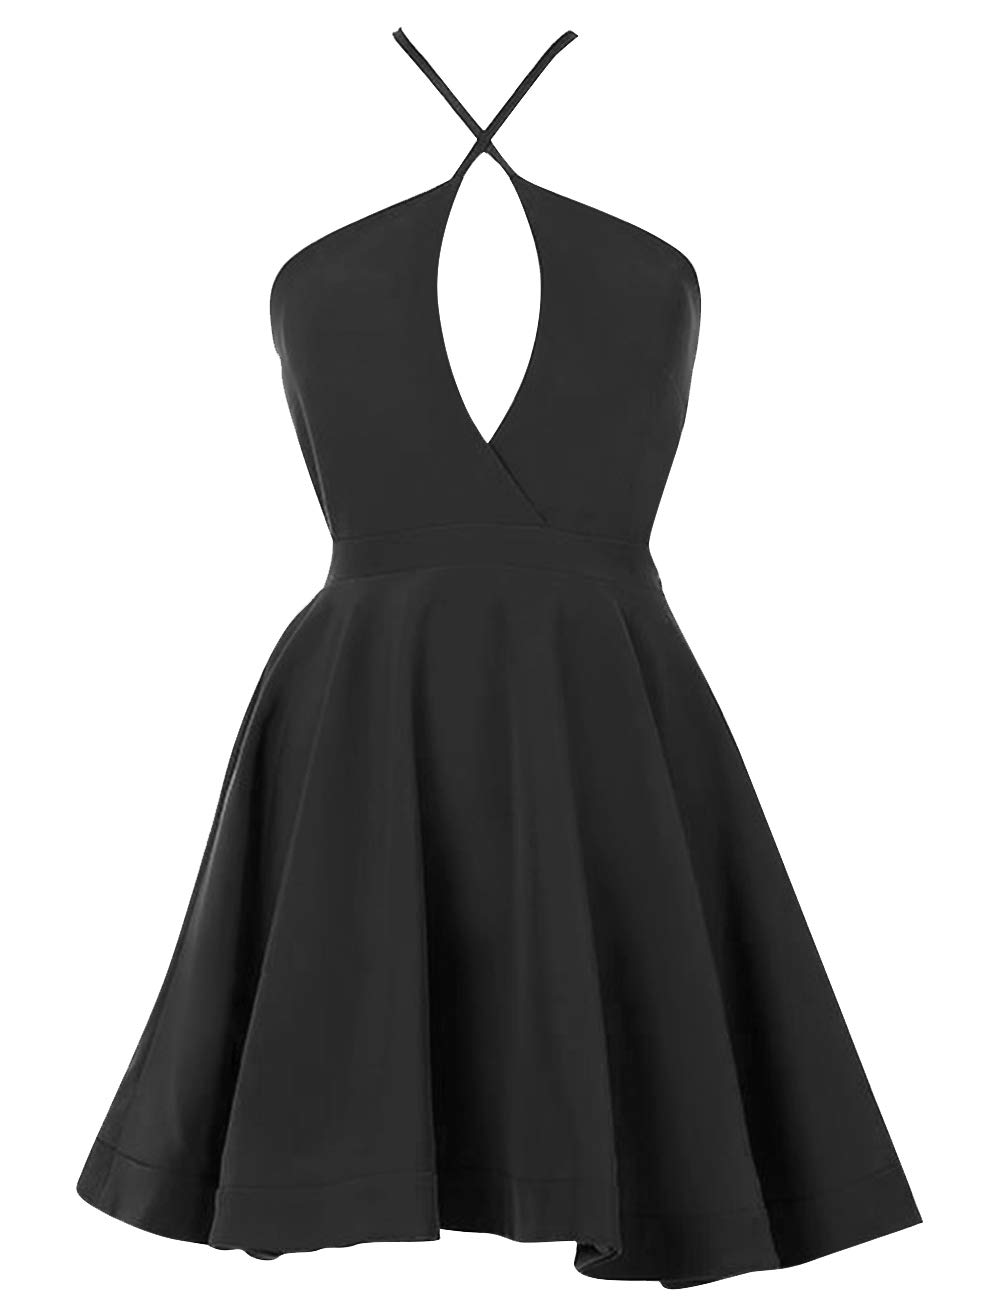 JAEDEN Cocktail Dresses Homecoming Dress Evening Party Dress Adjustable Spaghetti Straps Backless Mini